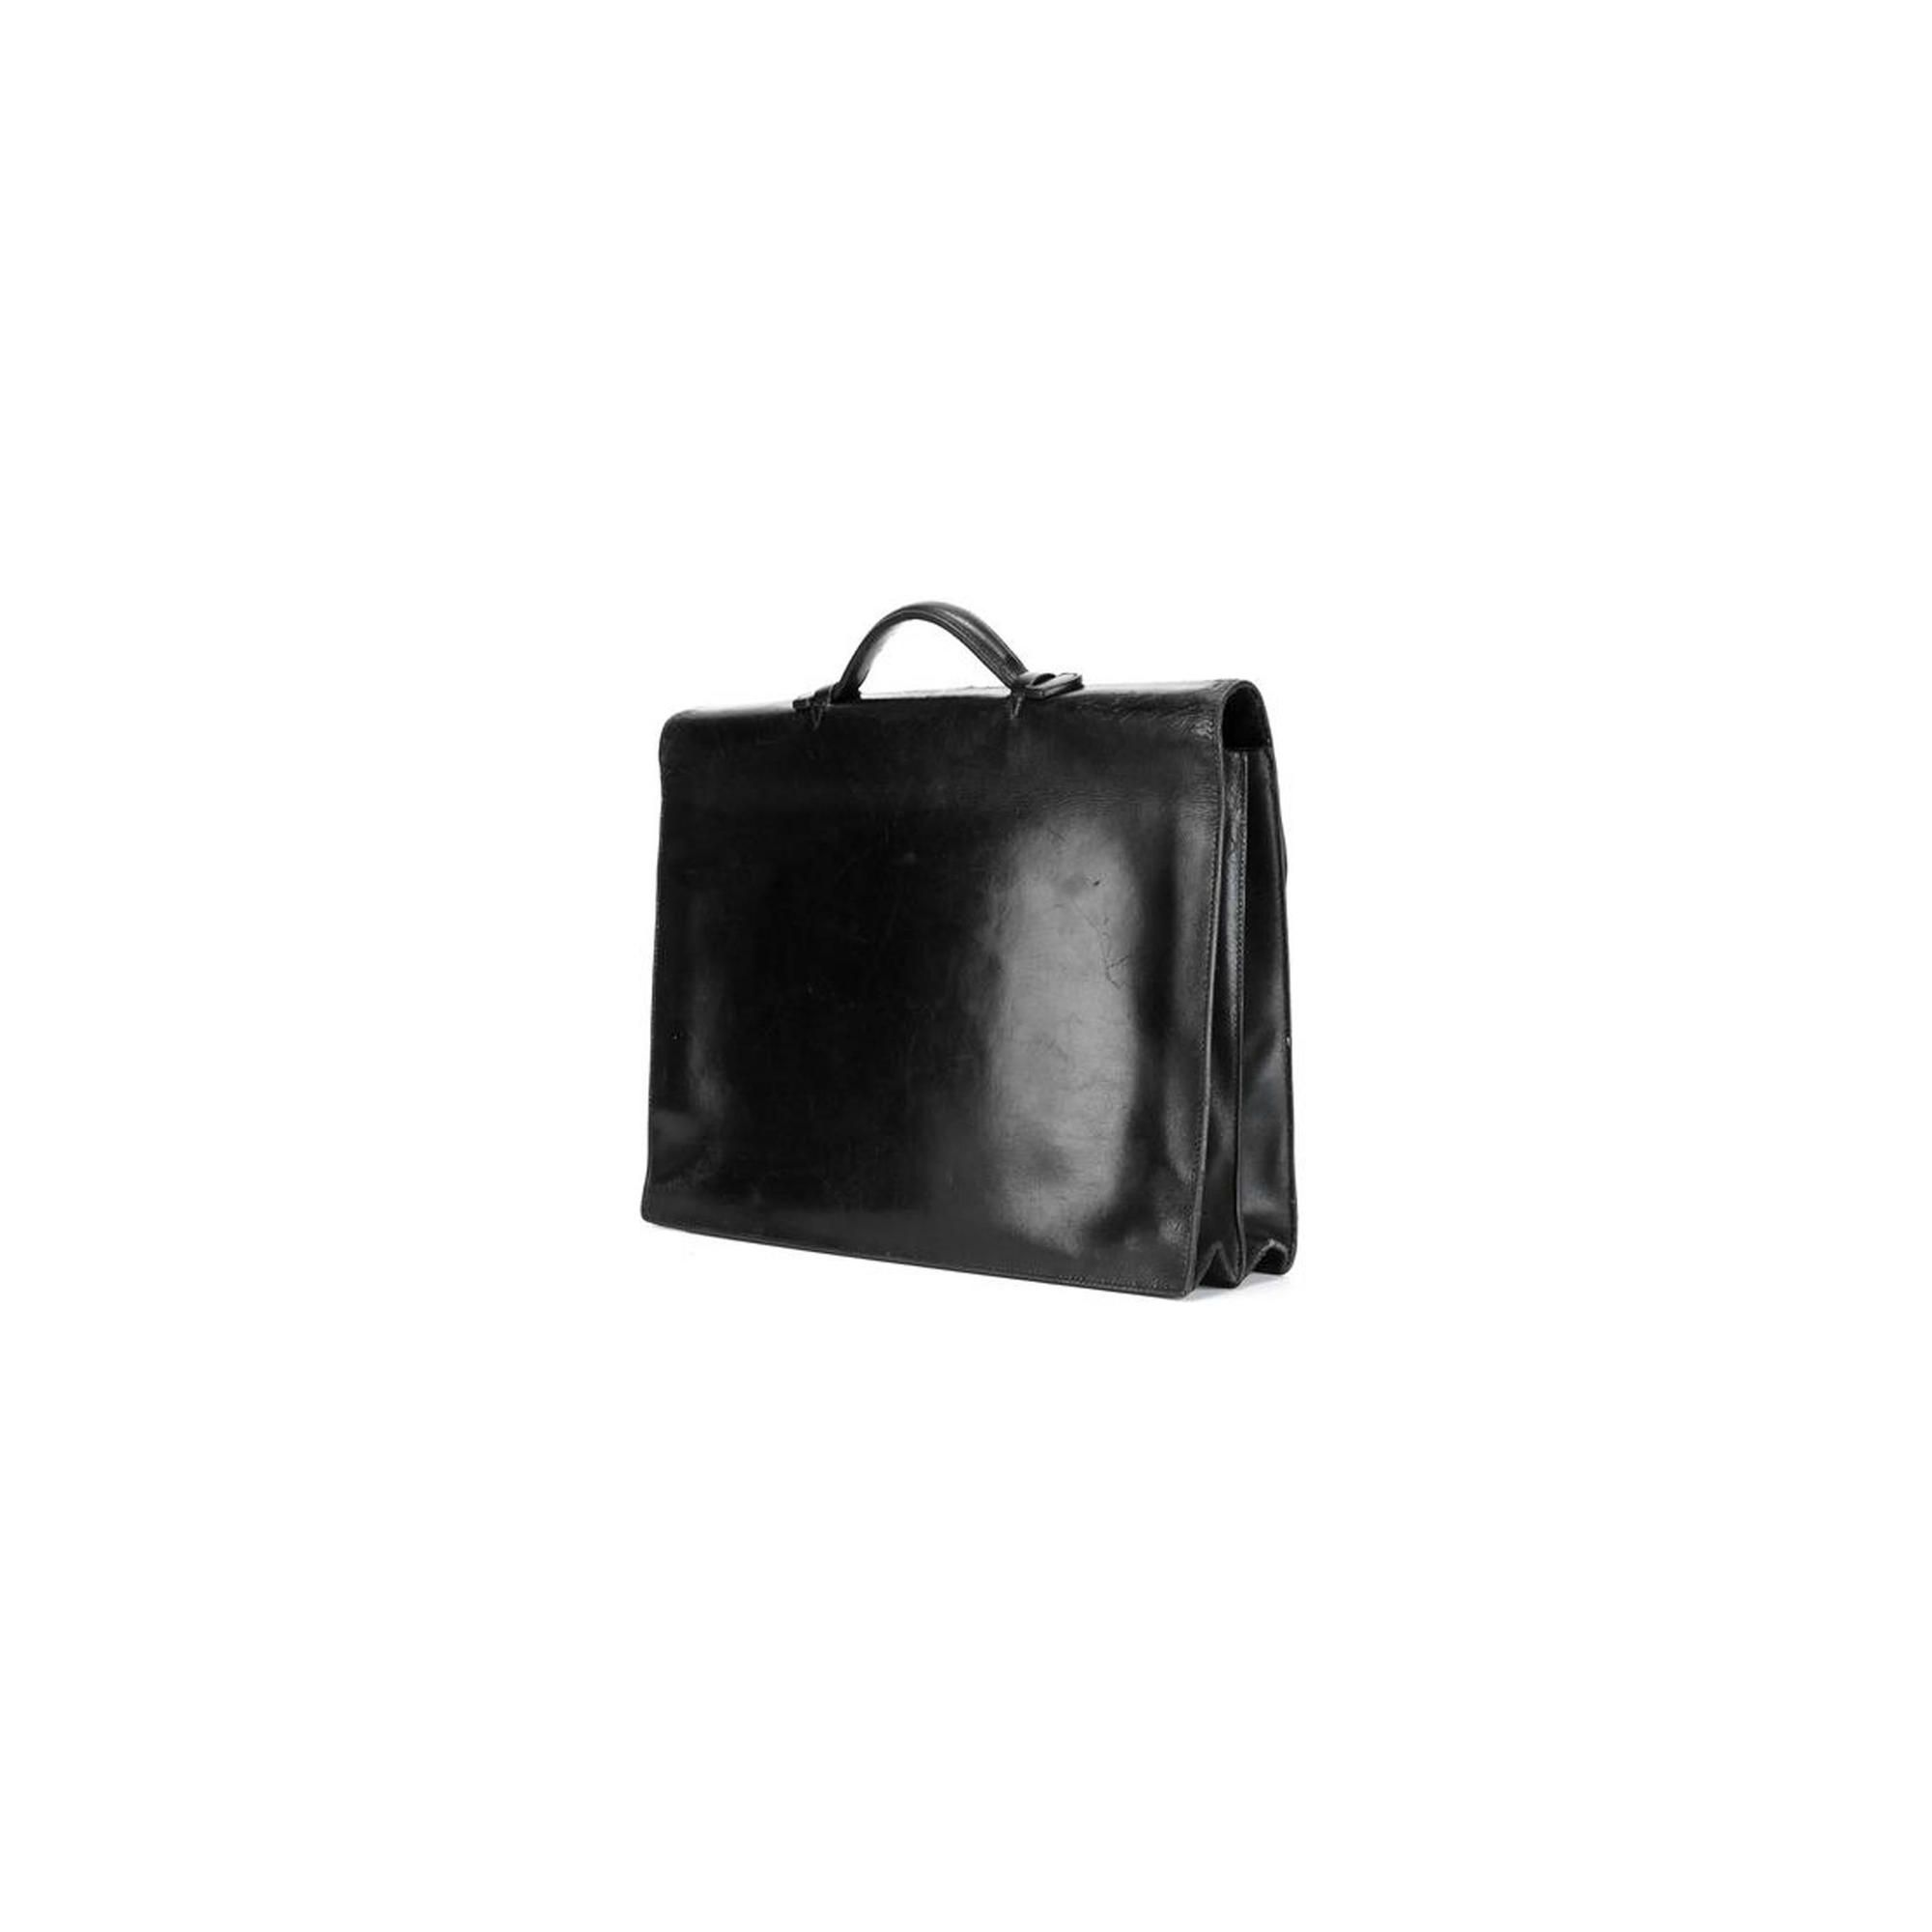 42b26e59c27e ... Black Calf Leather Briefcase Sac a Depeches-2 ...